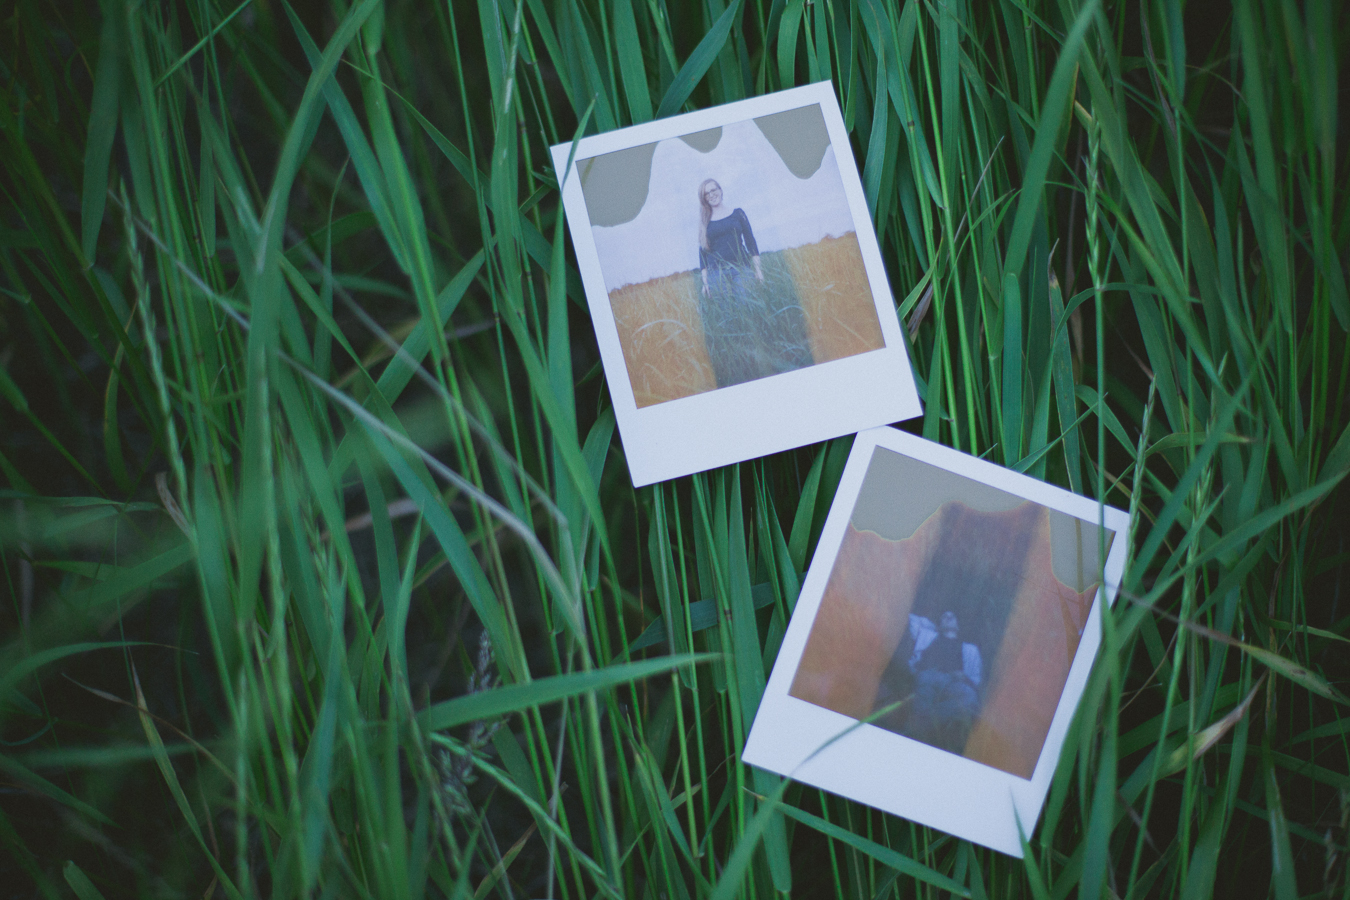 Actual photos taken with the Polaroid 600